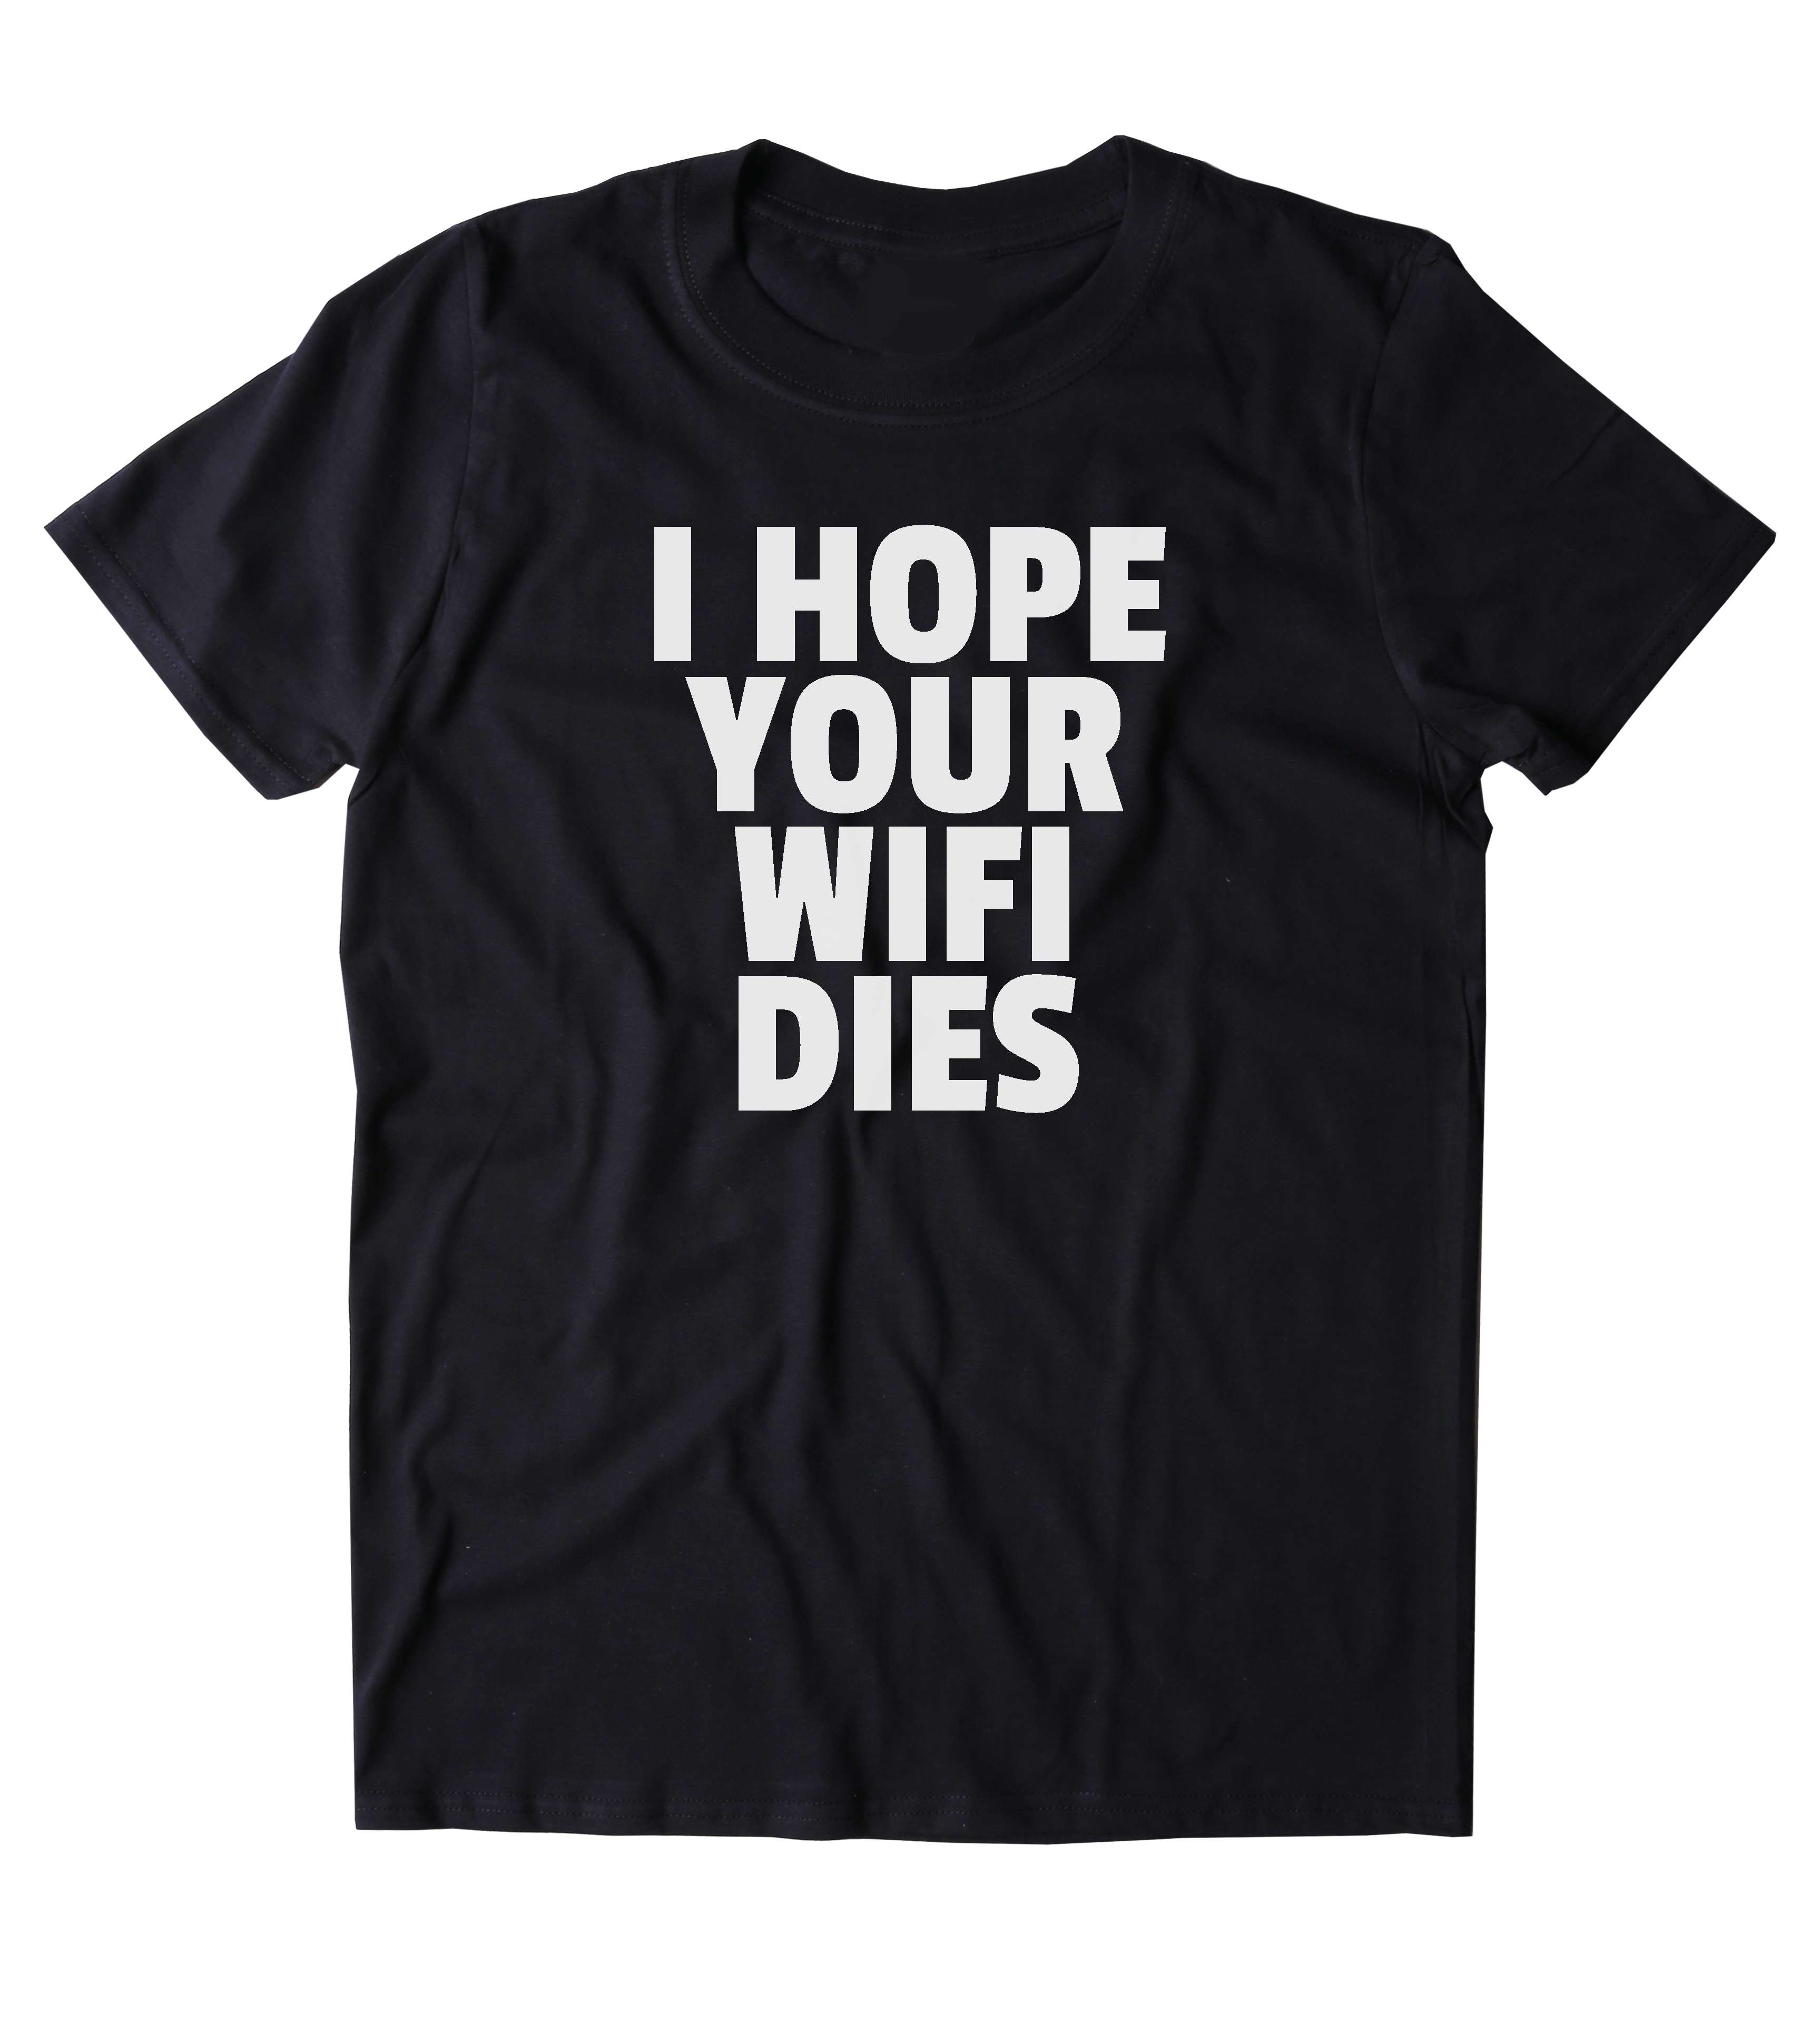 e2327404 I Hope Your Wifi Dies T-Shirt Funny Internet Addict Social Media Blogger  Tumblr Sarcastic Clothing Shirt on Storenvy